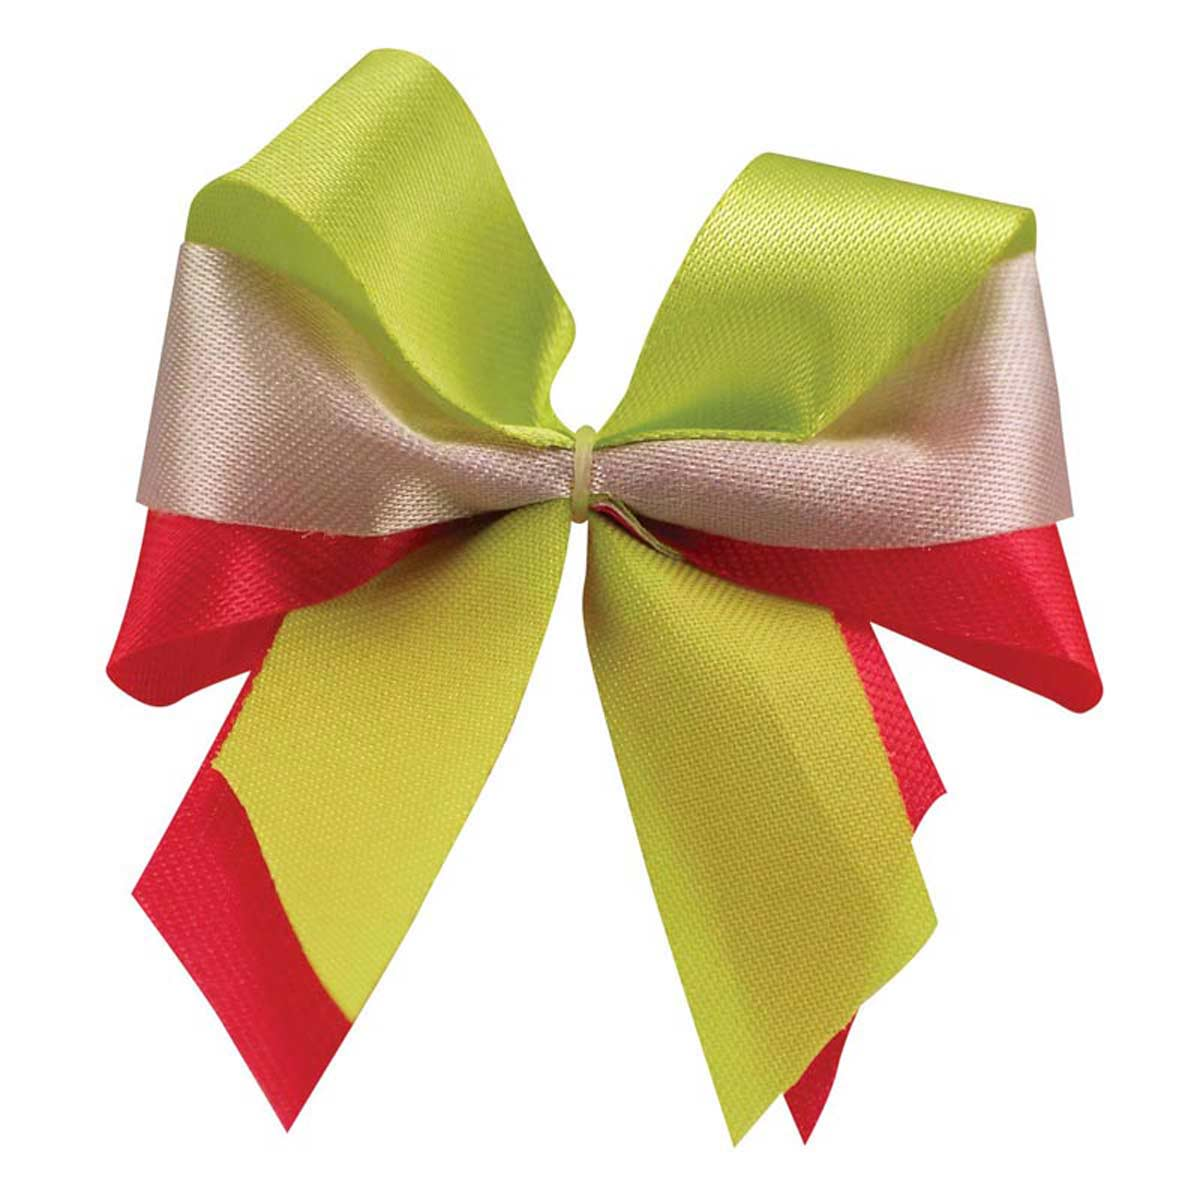 Fancy Finishes Triple Satin .625 inch Dog Bows - 100 Count Bag